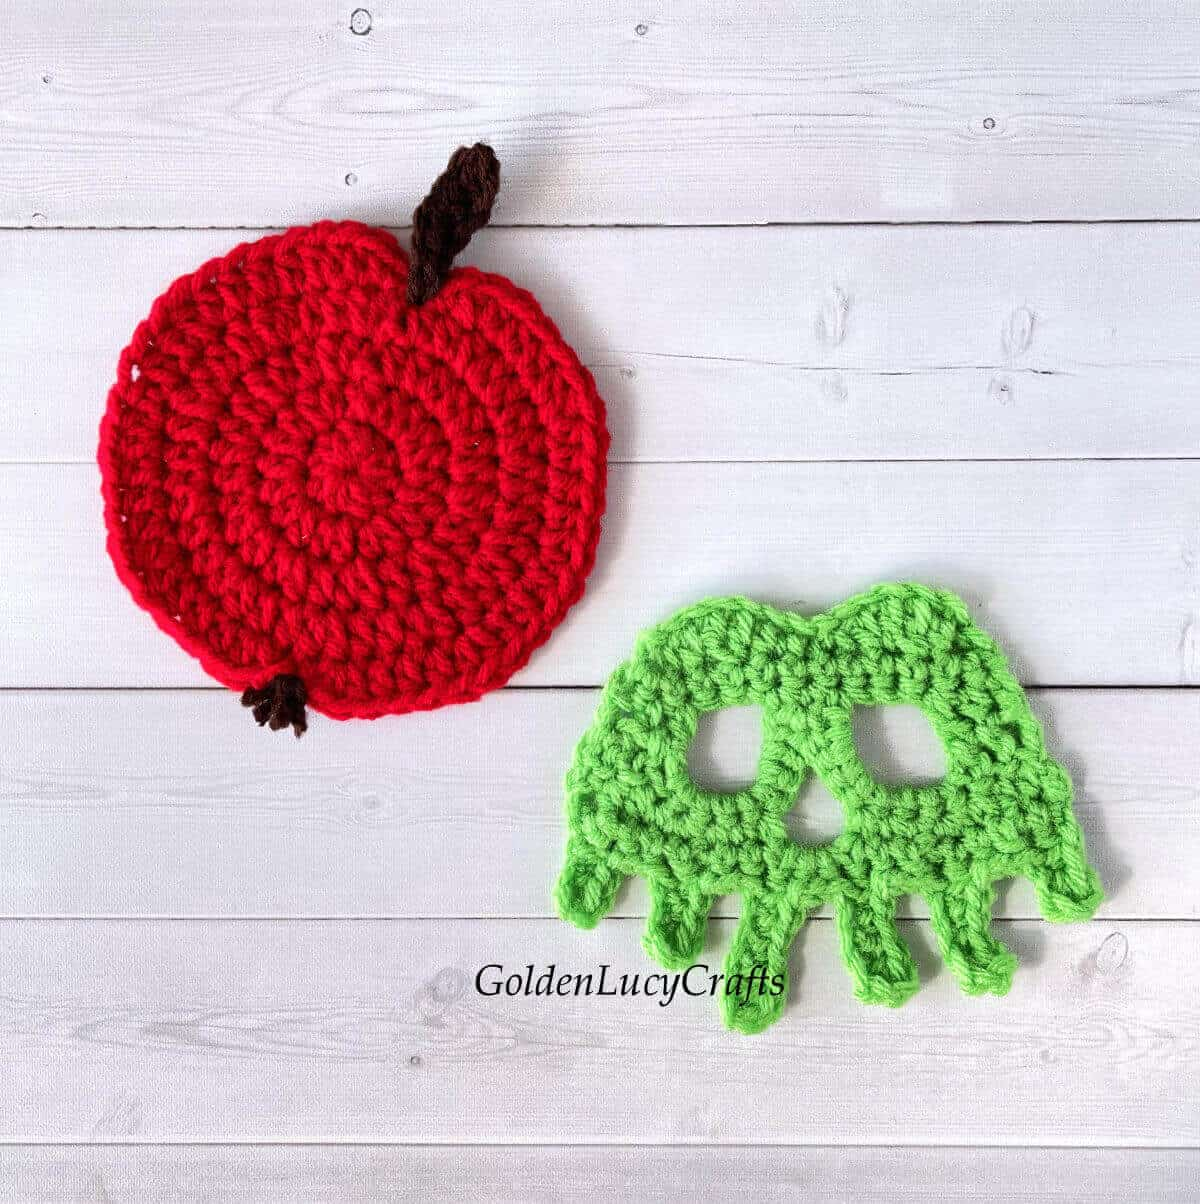 Parts of crocheted poisoned apple.